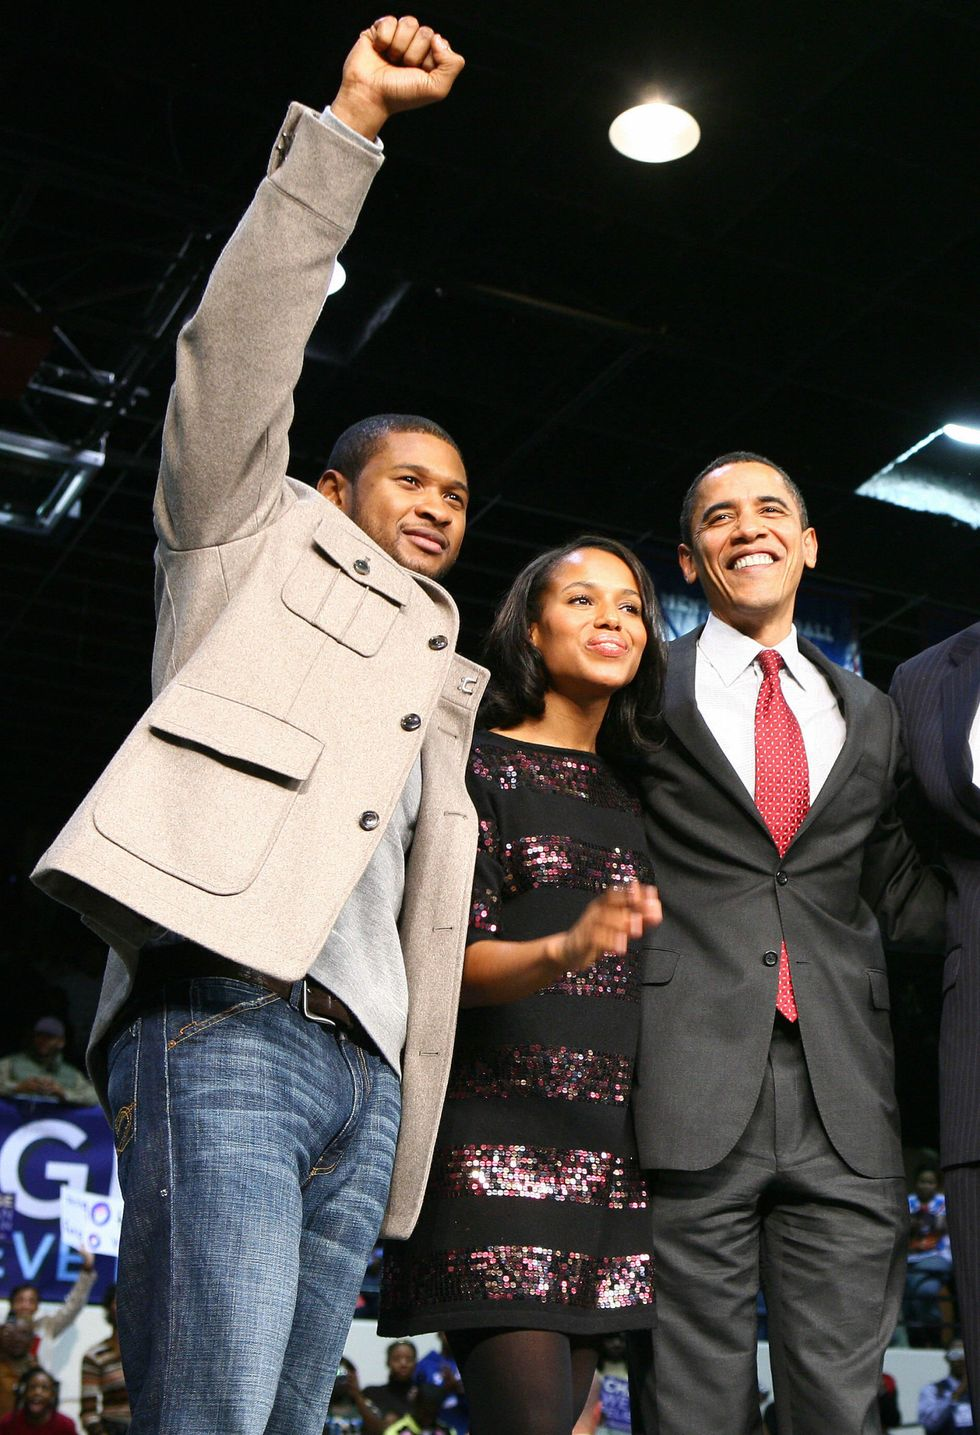 Kerry Washington and Usher With Barack Obama Kerry Washington and Usher showed some love to the future 44th president as he campaigned for his first election in 2008. The trio reunited once more at President Obama's White House farewell party in 2017, which, apparently, was a total rager —word on the street is that the demure actress was moshing!